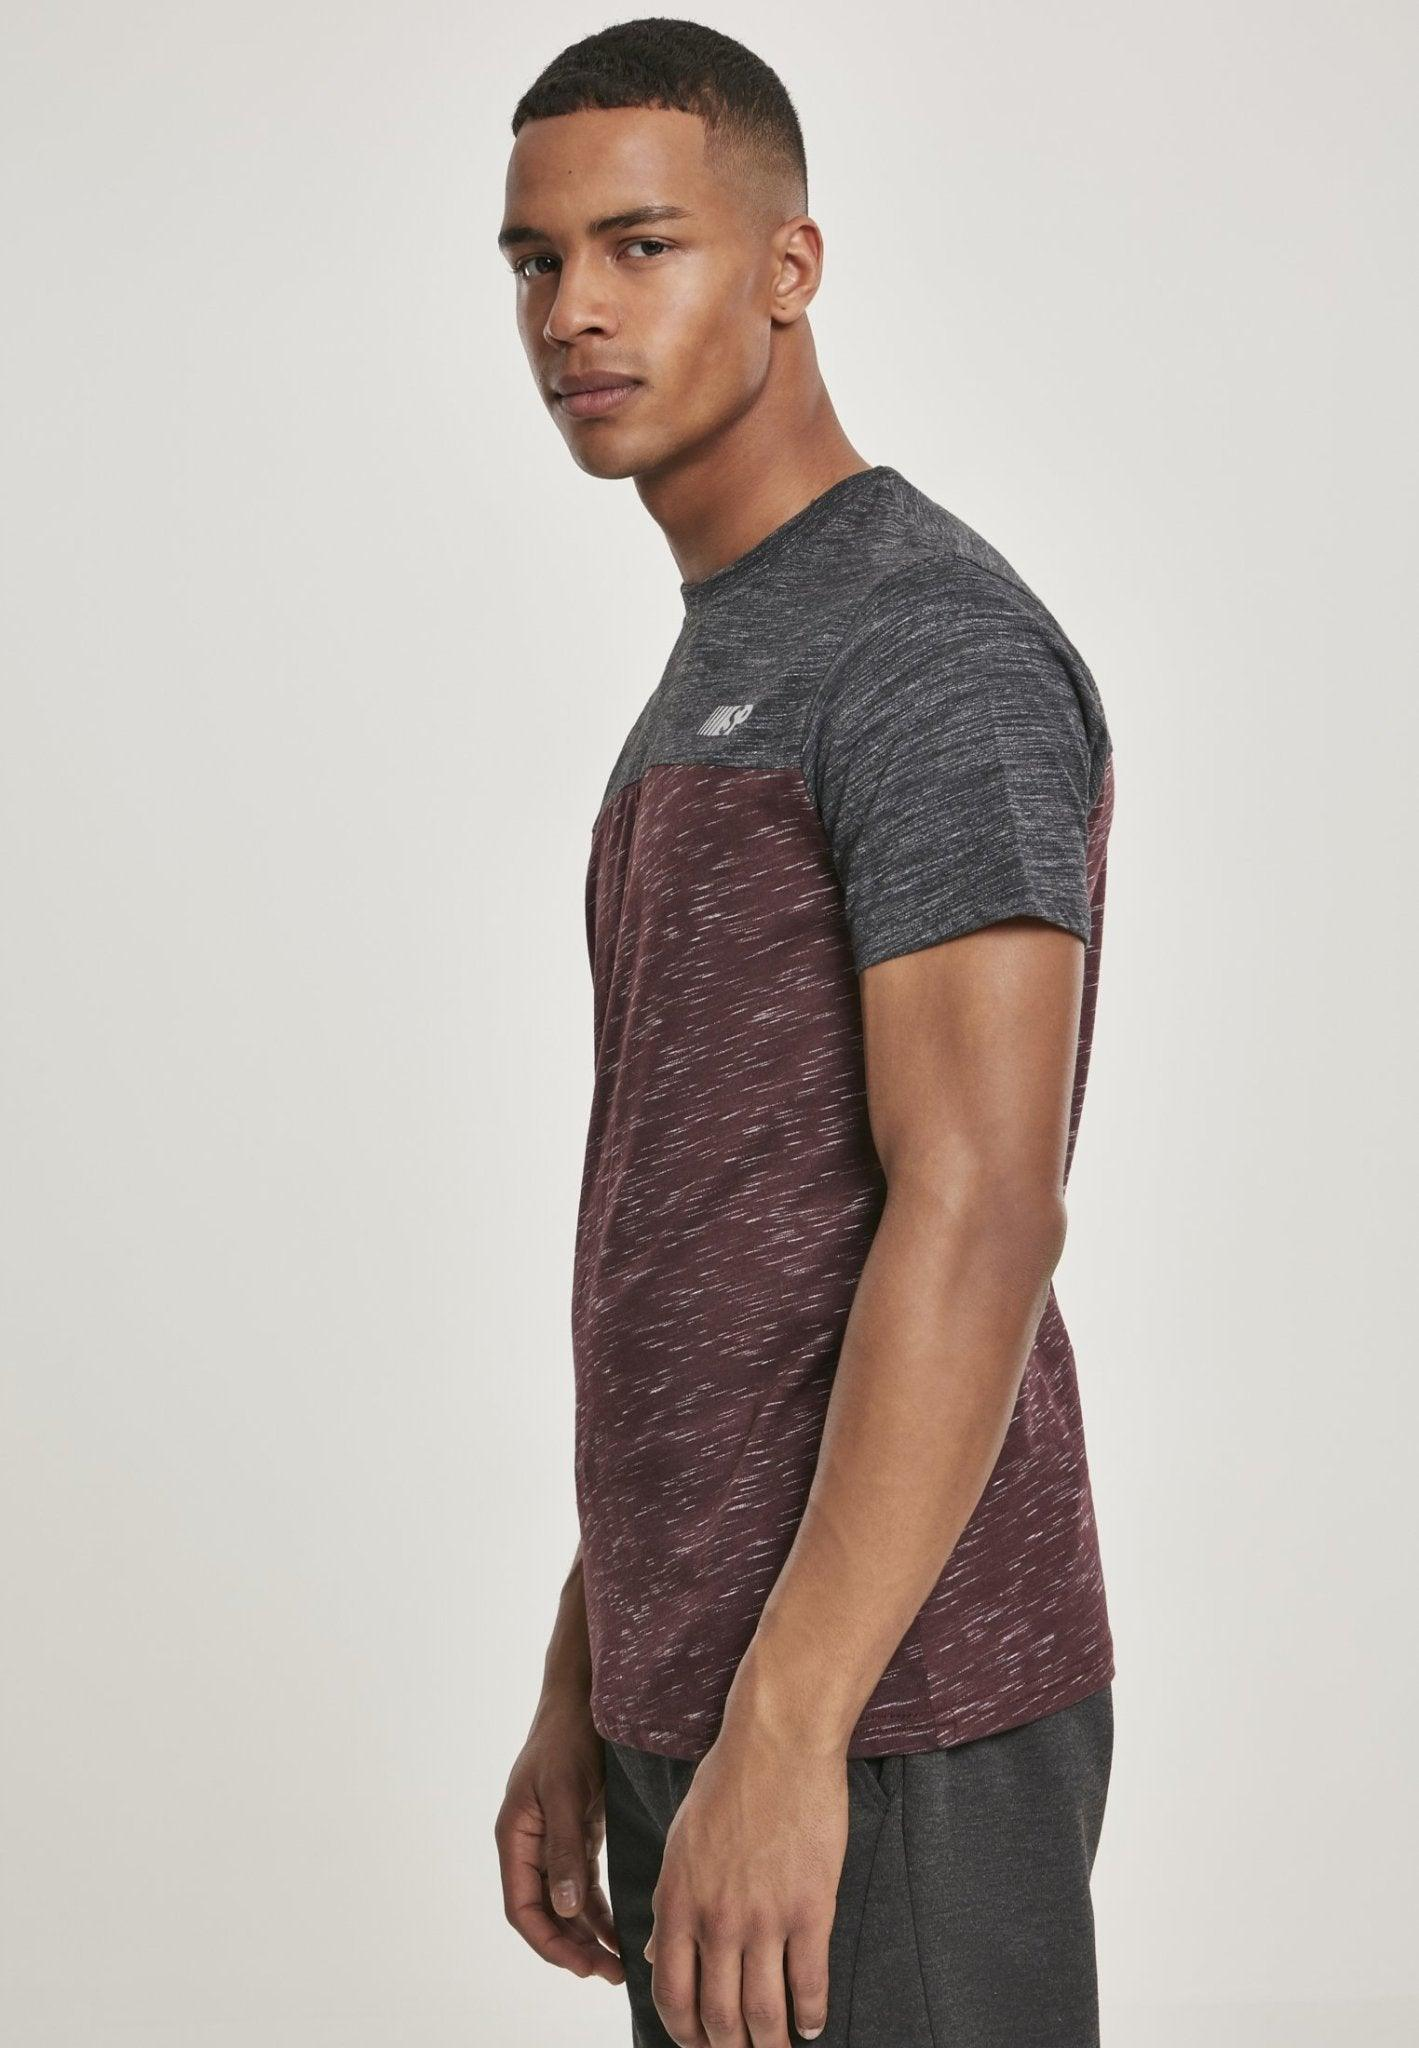 Color Block Tech Tee Marled Burgundy - Inexorebel